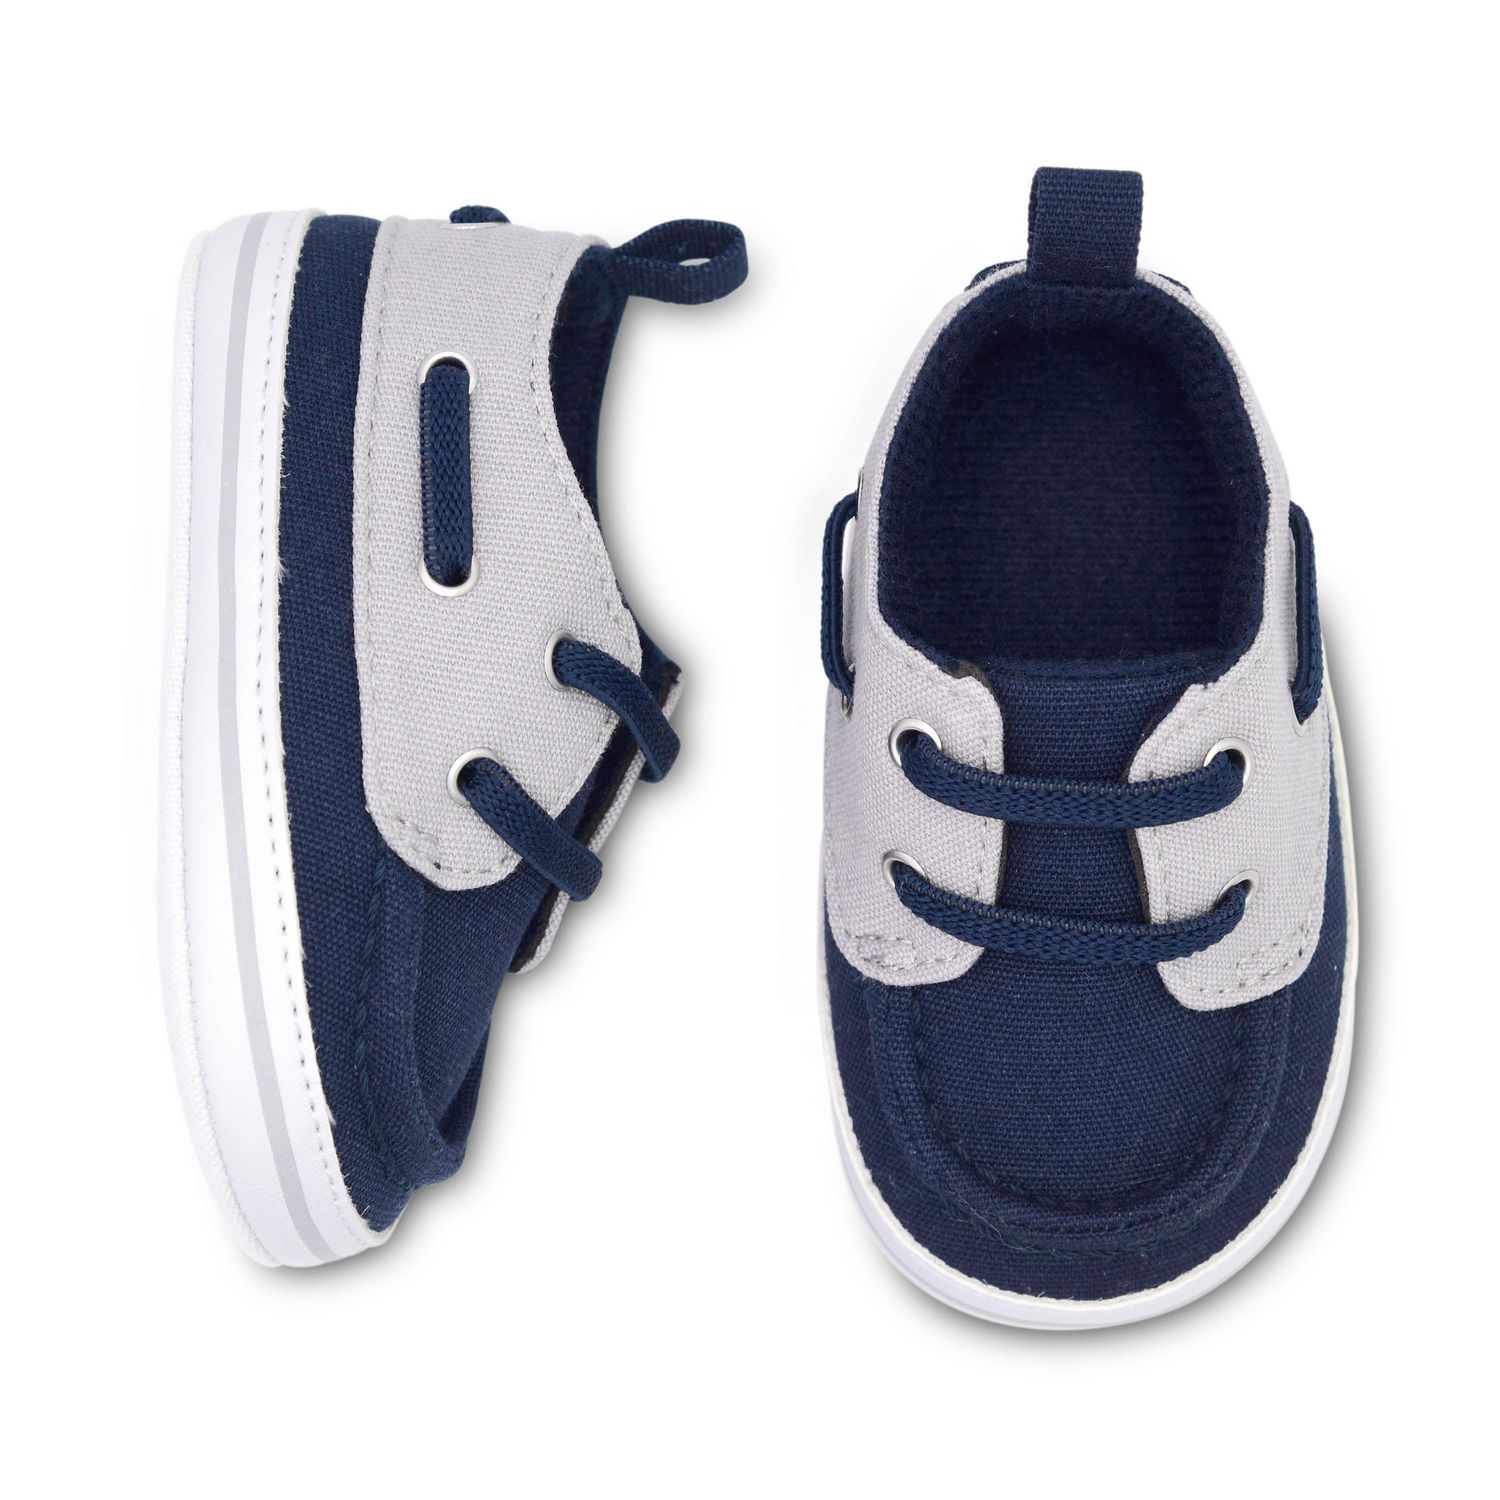 carters boys boat shoes